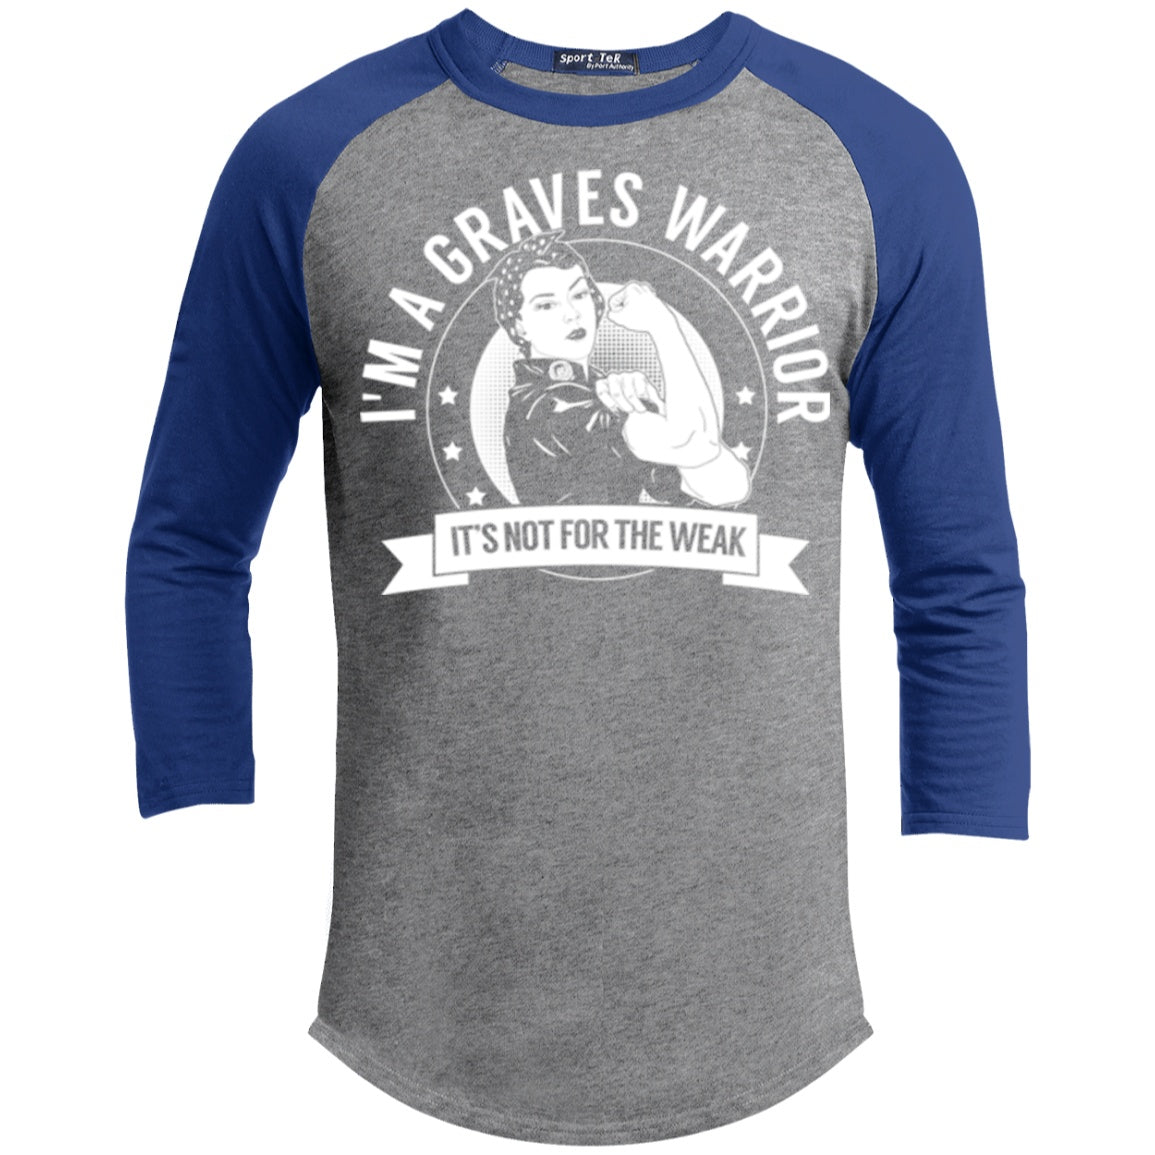 Graves Disease - Graves Warrior Not For The Weak Baseball Shirt - The Unchargeables